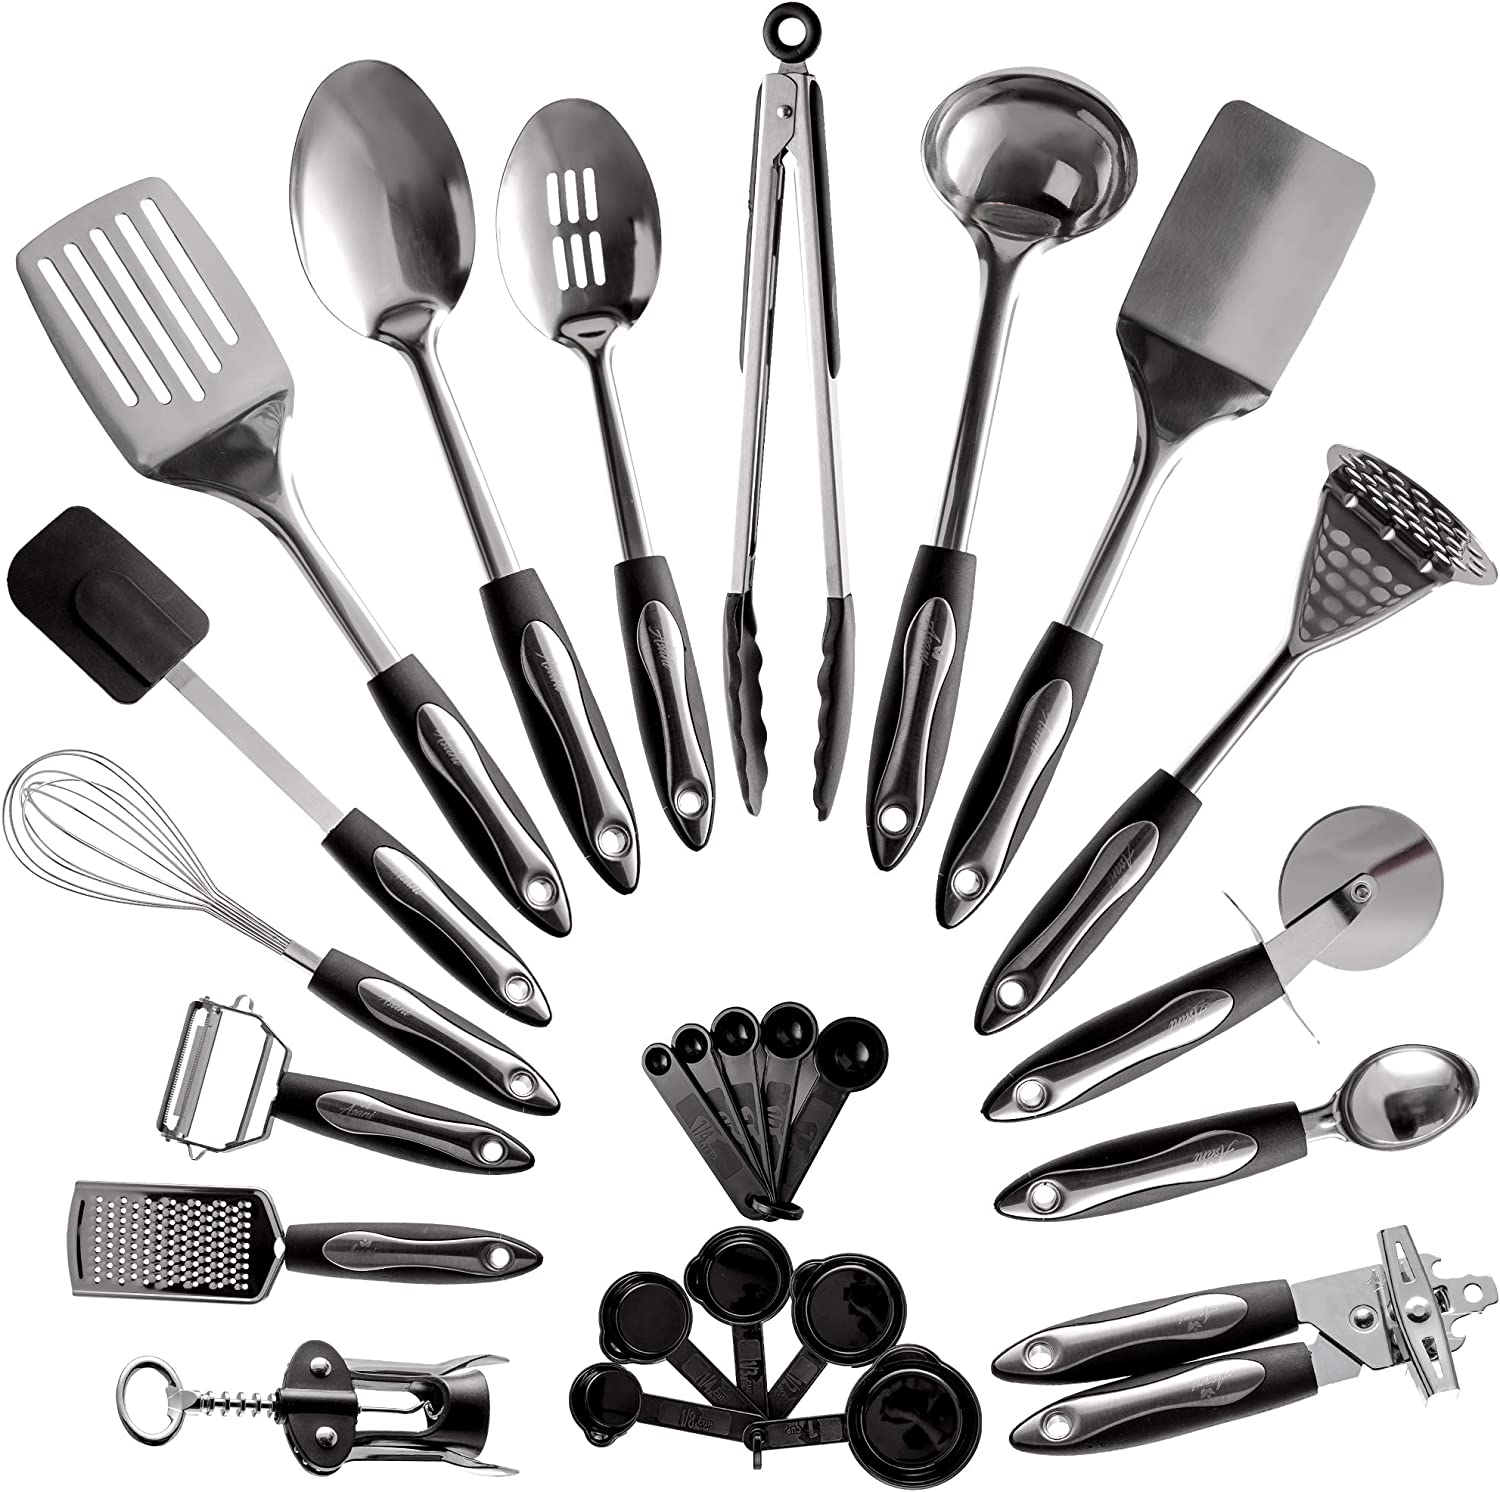 25-Piece Stainless Steel Kitchen Utensil Set | Non-Stick Cooking Gadgets and Tools Kit